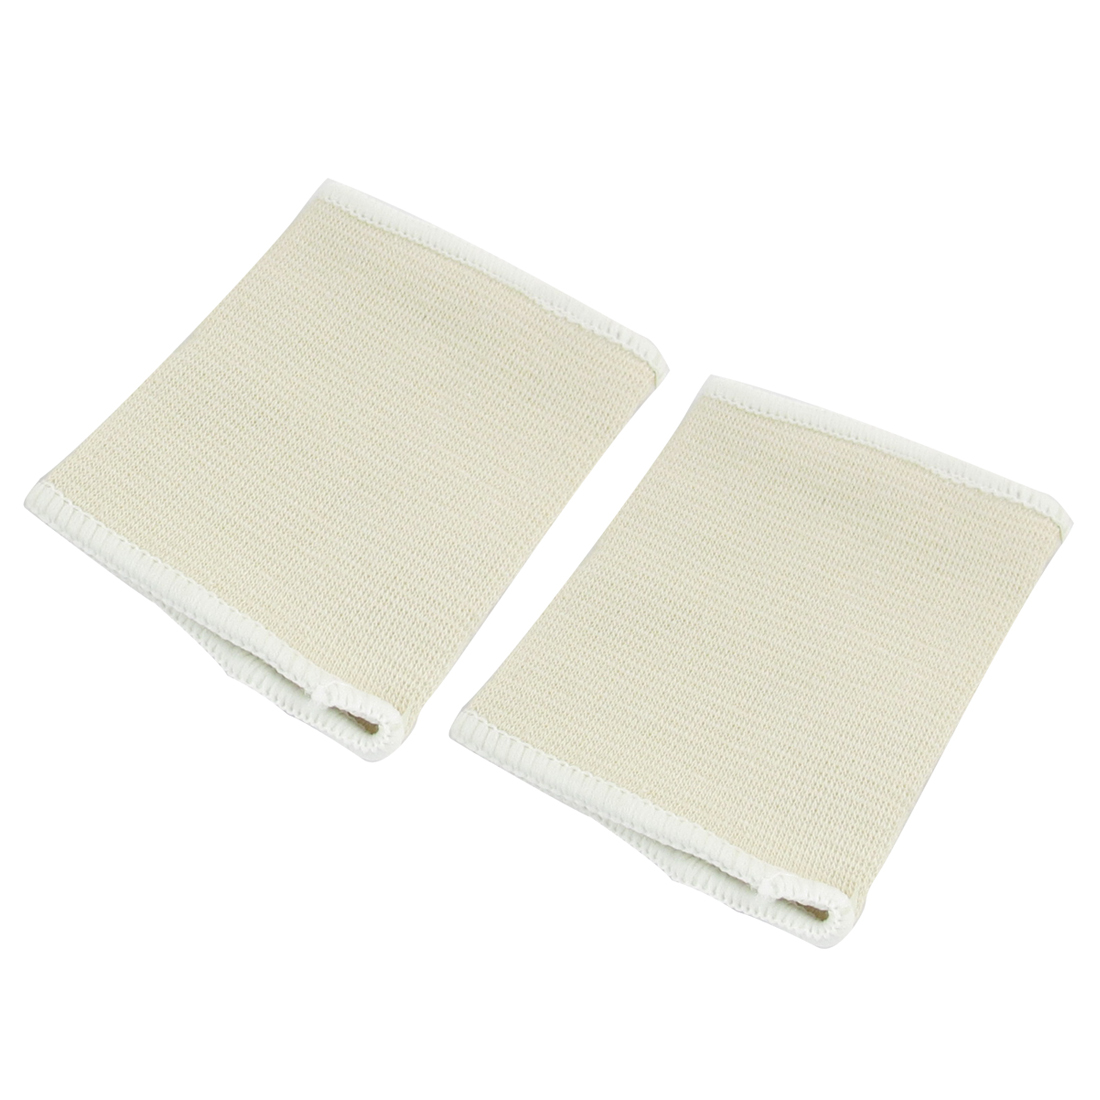 2 Pcs Beige White Elastic Band Pullover Shape Wrist Support Protector Brace